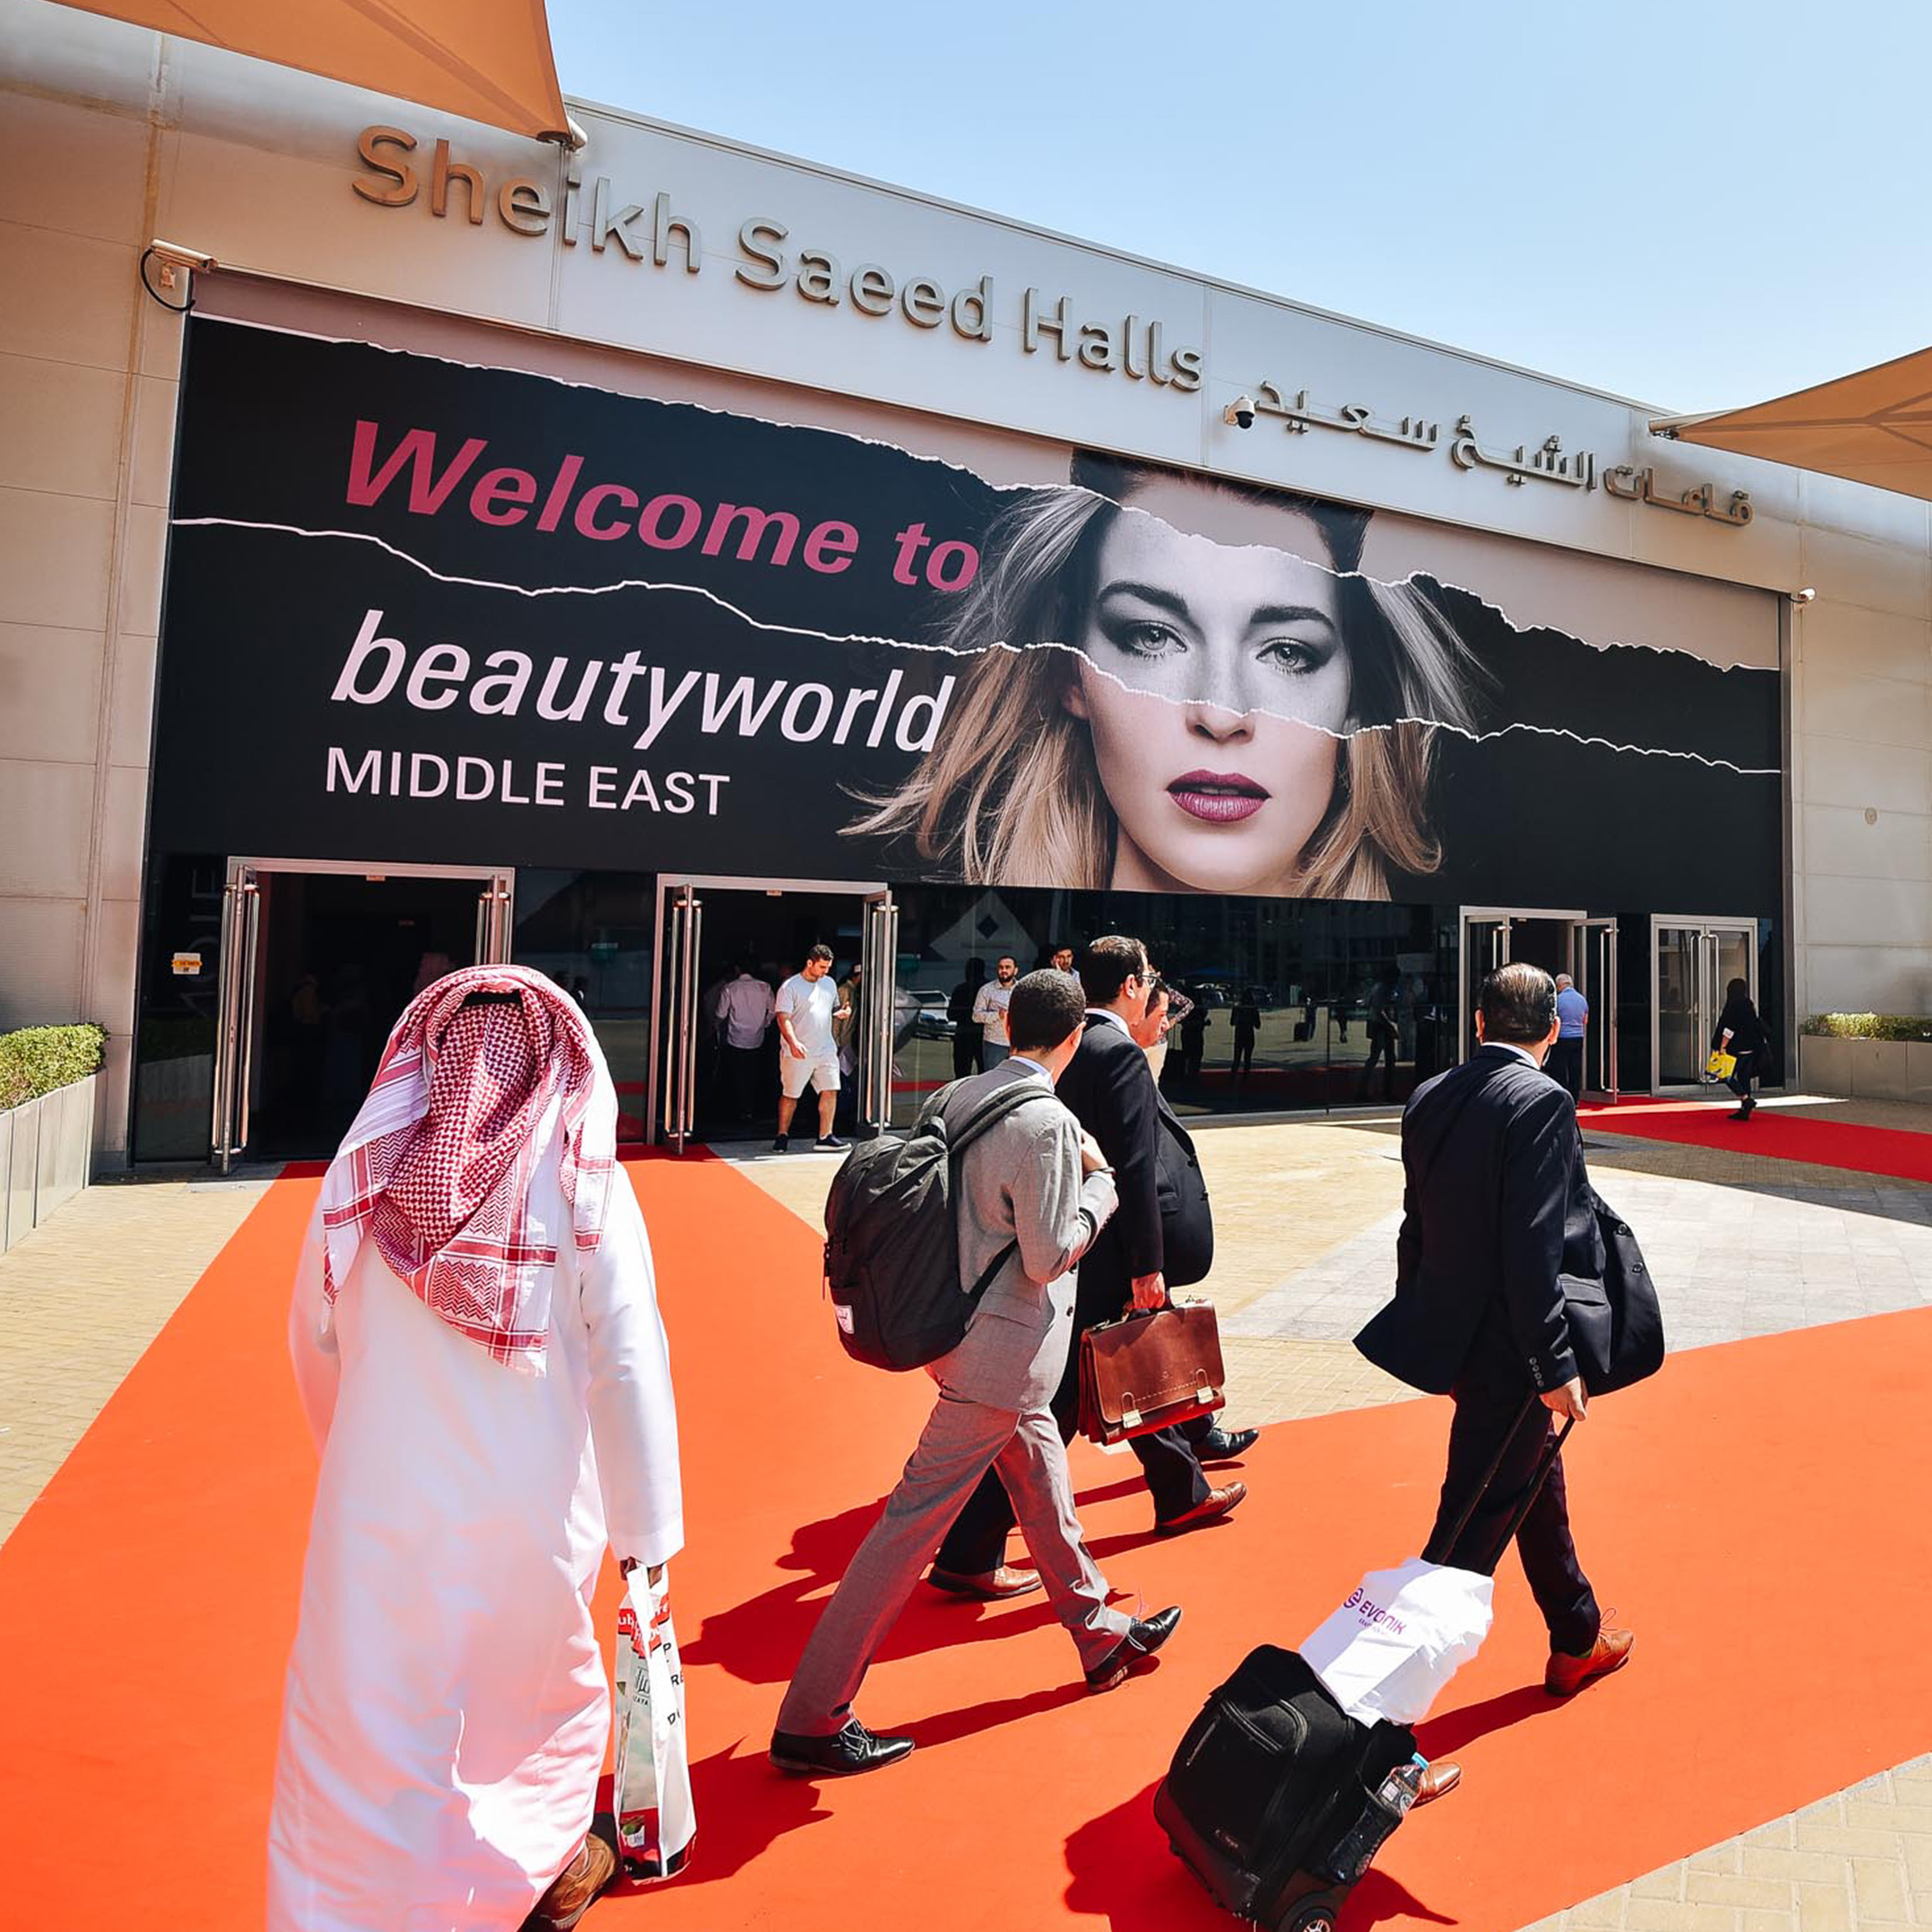 Beautyworld Middle East - Leading beauty manufacturers eye up Middle East market tipped to grow 6.4% over the next five years